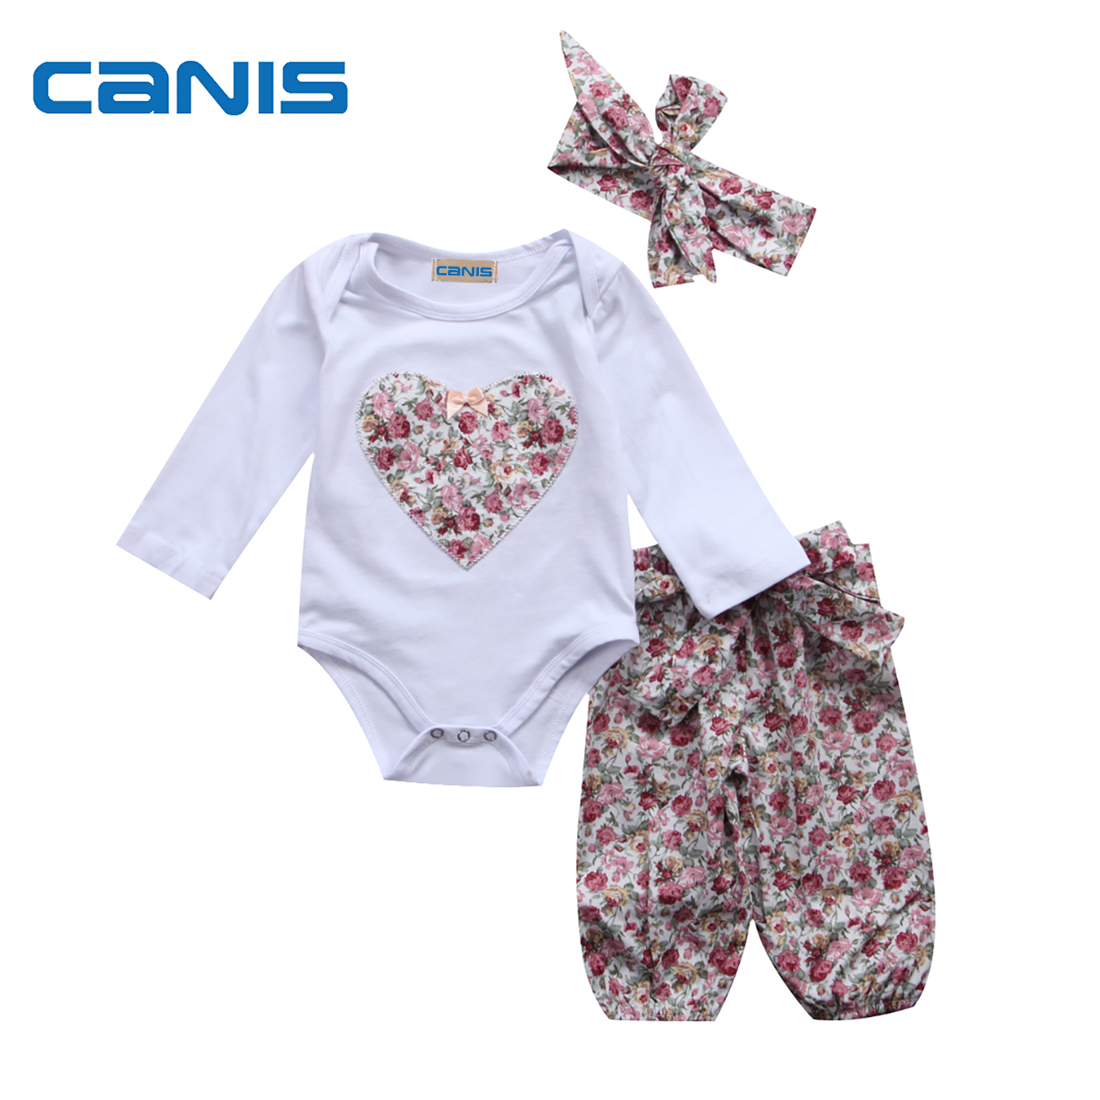 3Pcs Casual Baby Girls Clothes Newborn Infant Baby Girl Outfits Bodysuit Harlan Pants Leggings Outfits Clothes Set